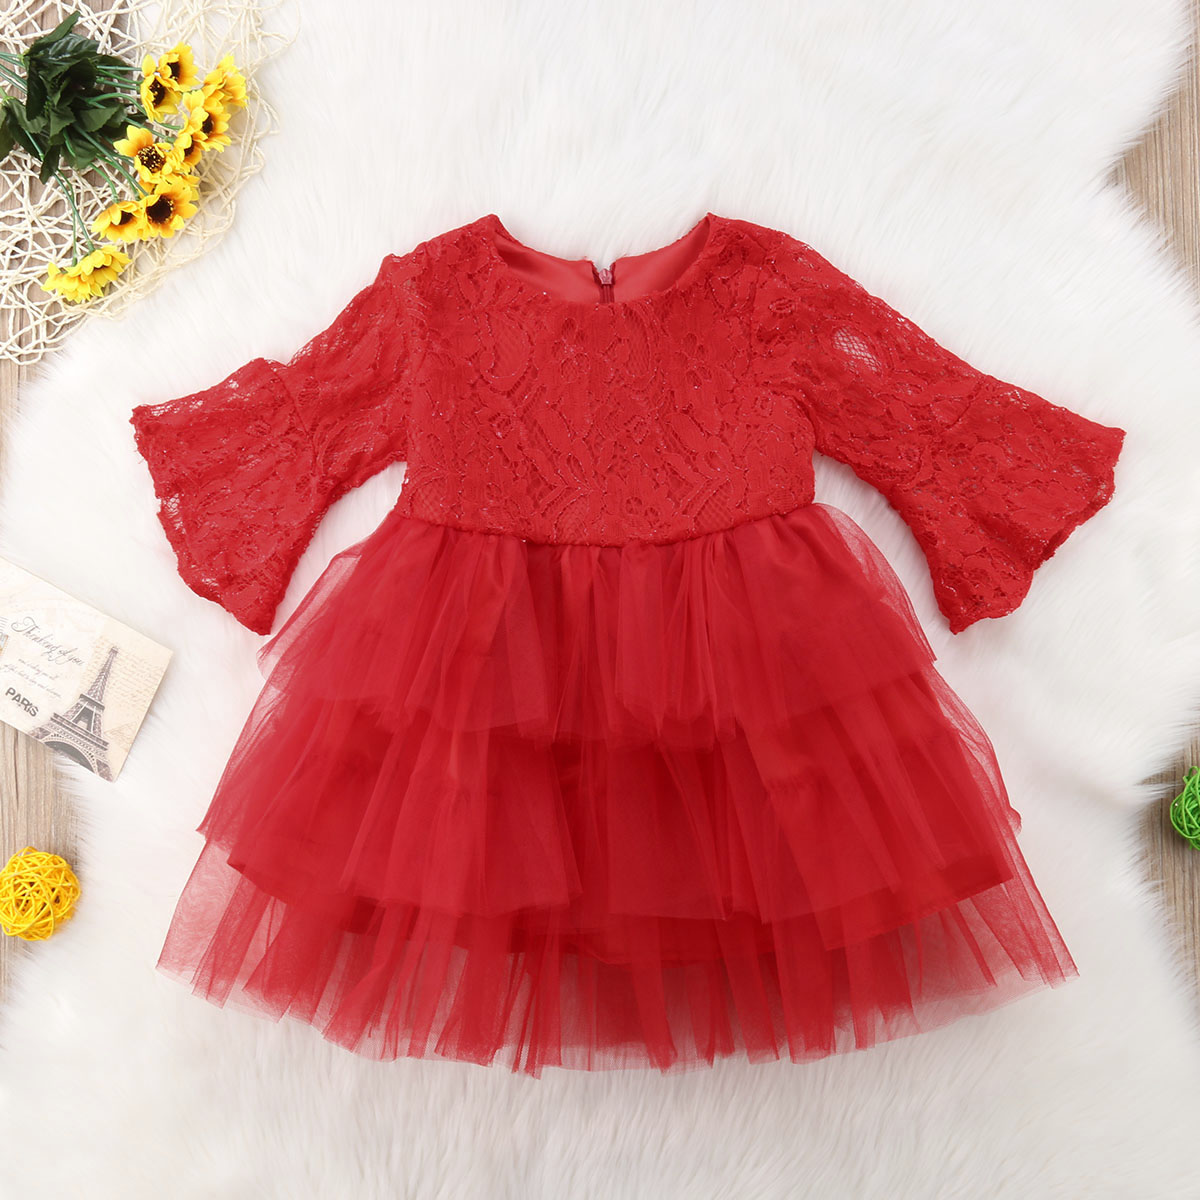 2018 Brand New Princess Formal Party Dress Toddler Baby Girl Layered